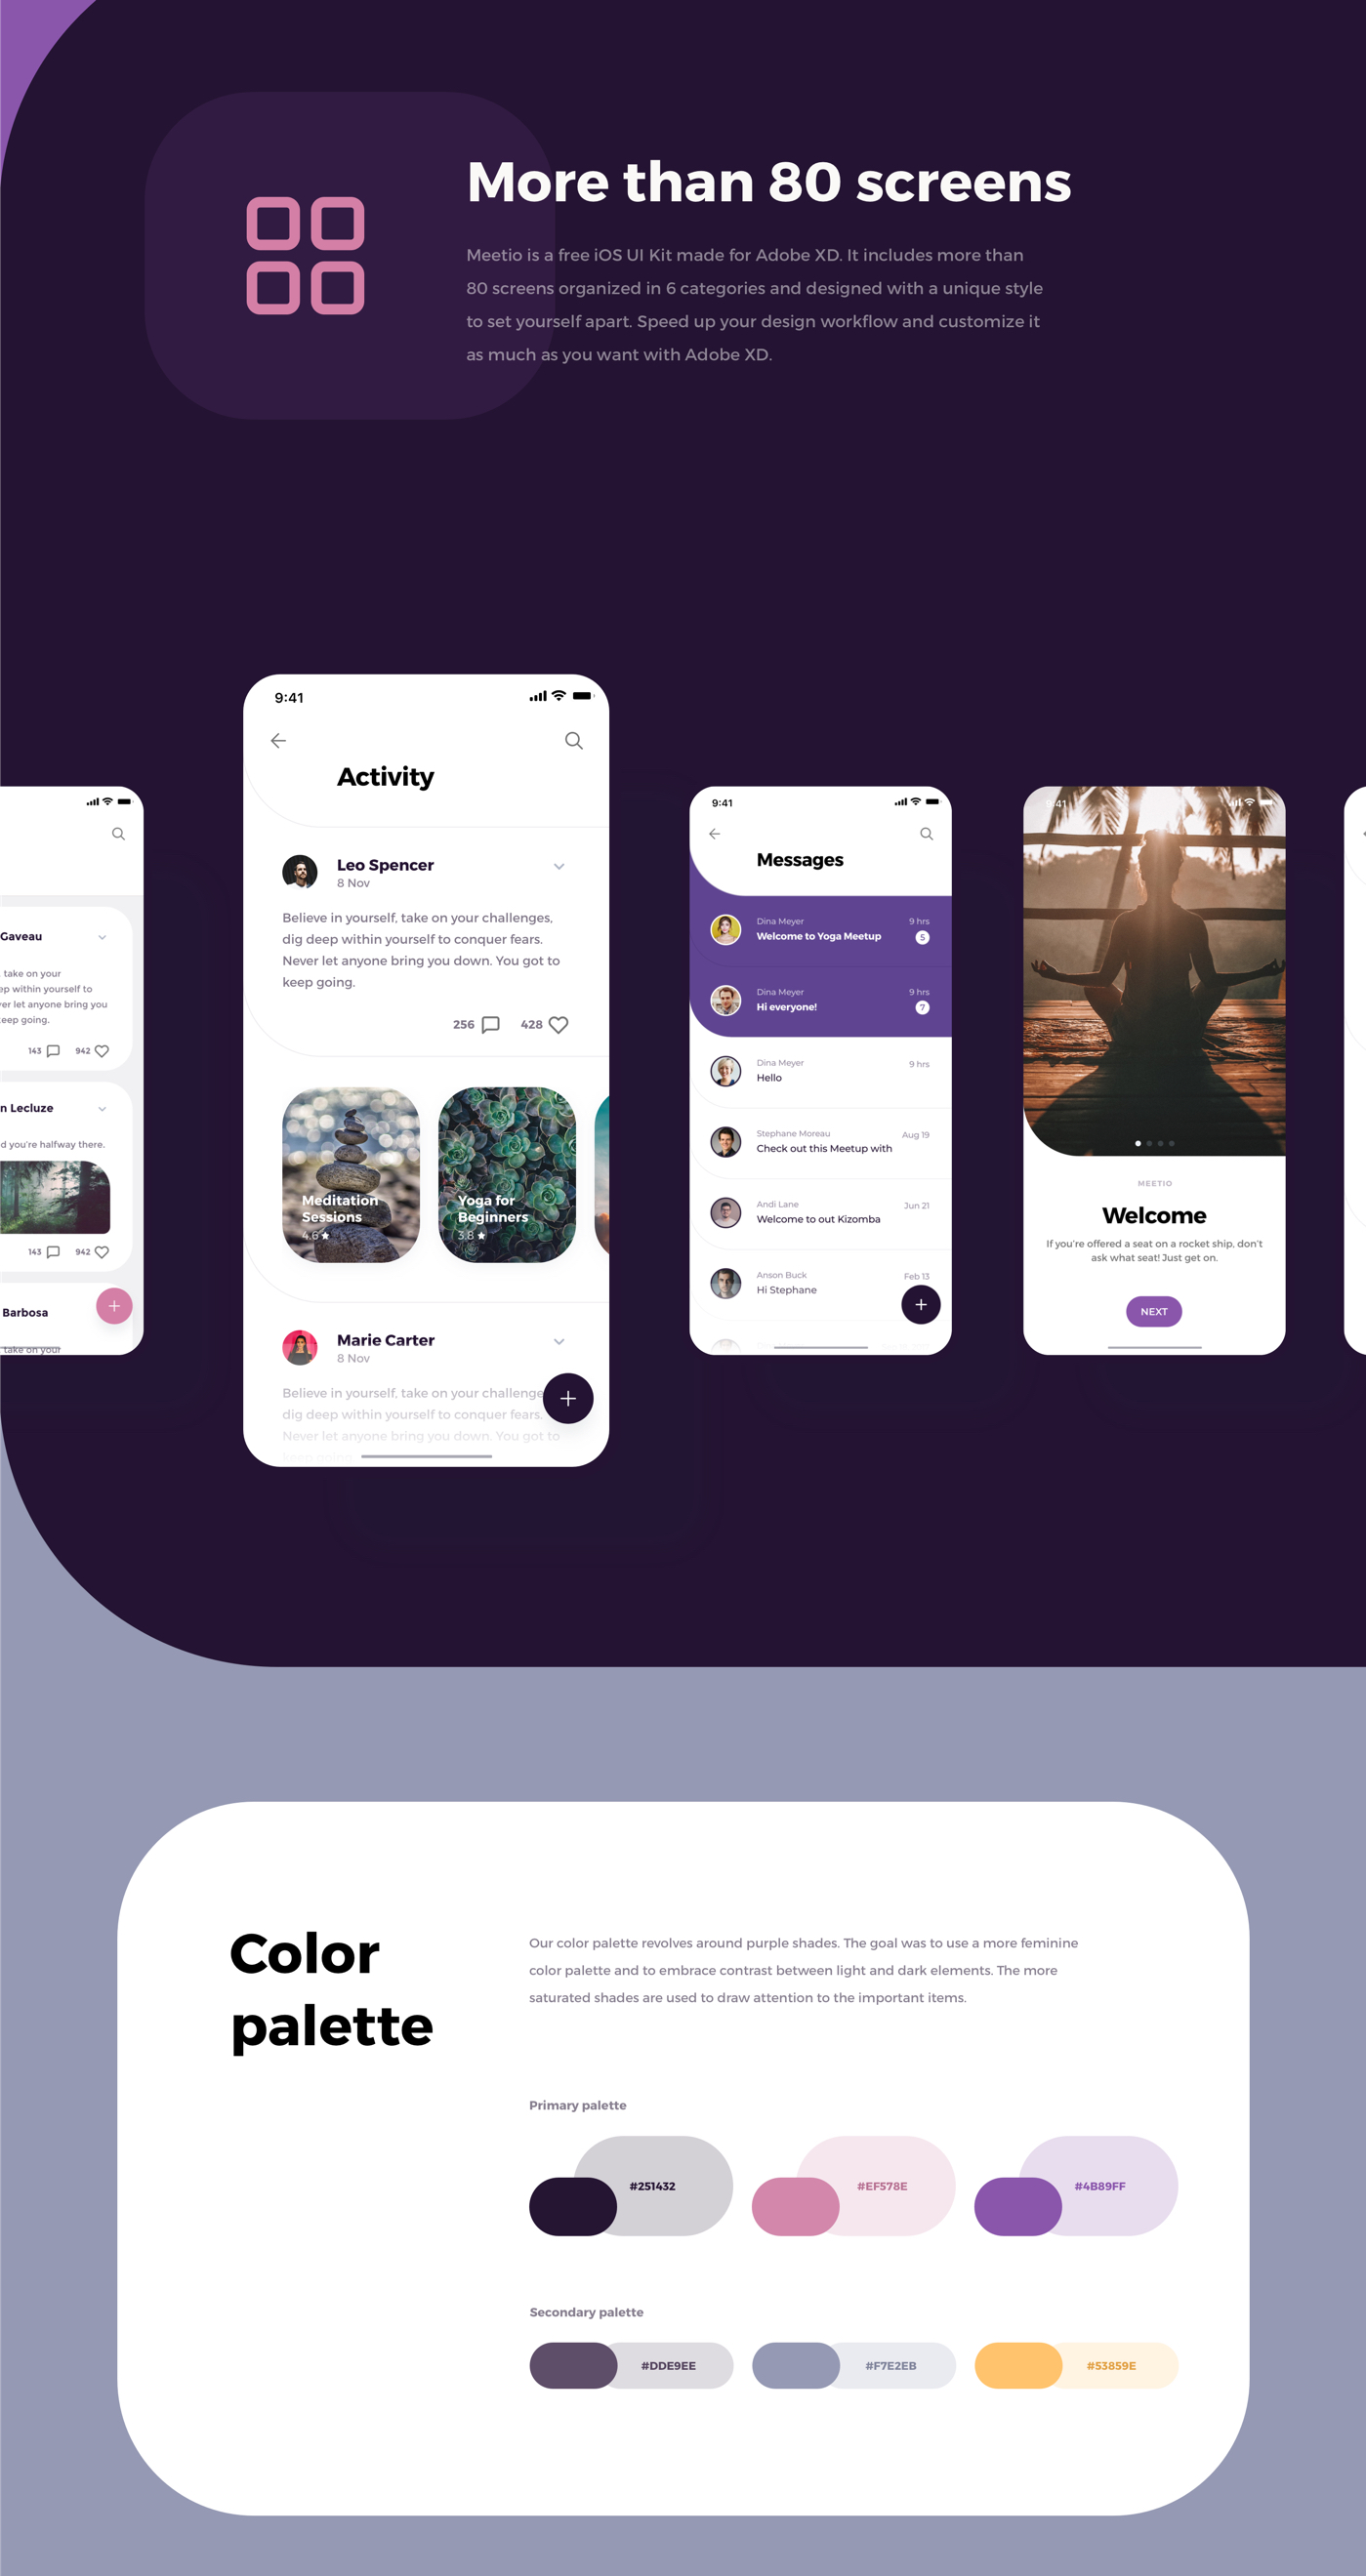 Meetio UI Kit for Adobe XD - Say hi to the Meetio UI Kit for @Adobe XD. More than 80 screens, very unique and yet customizable for your needs!